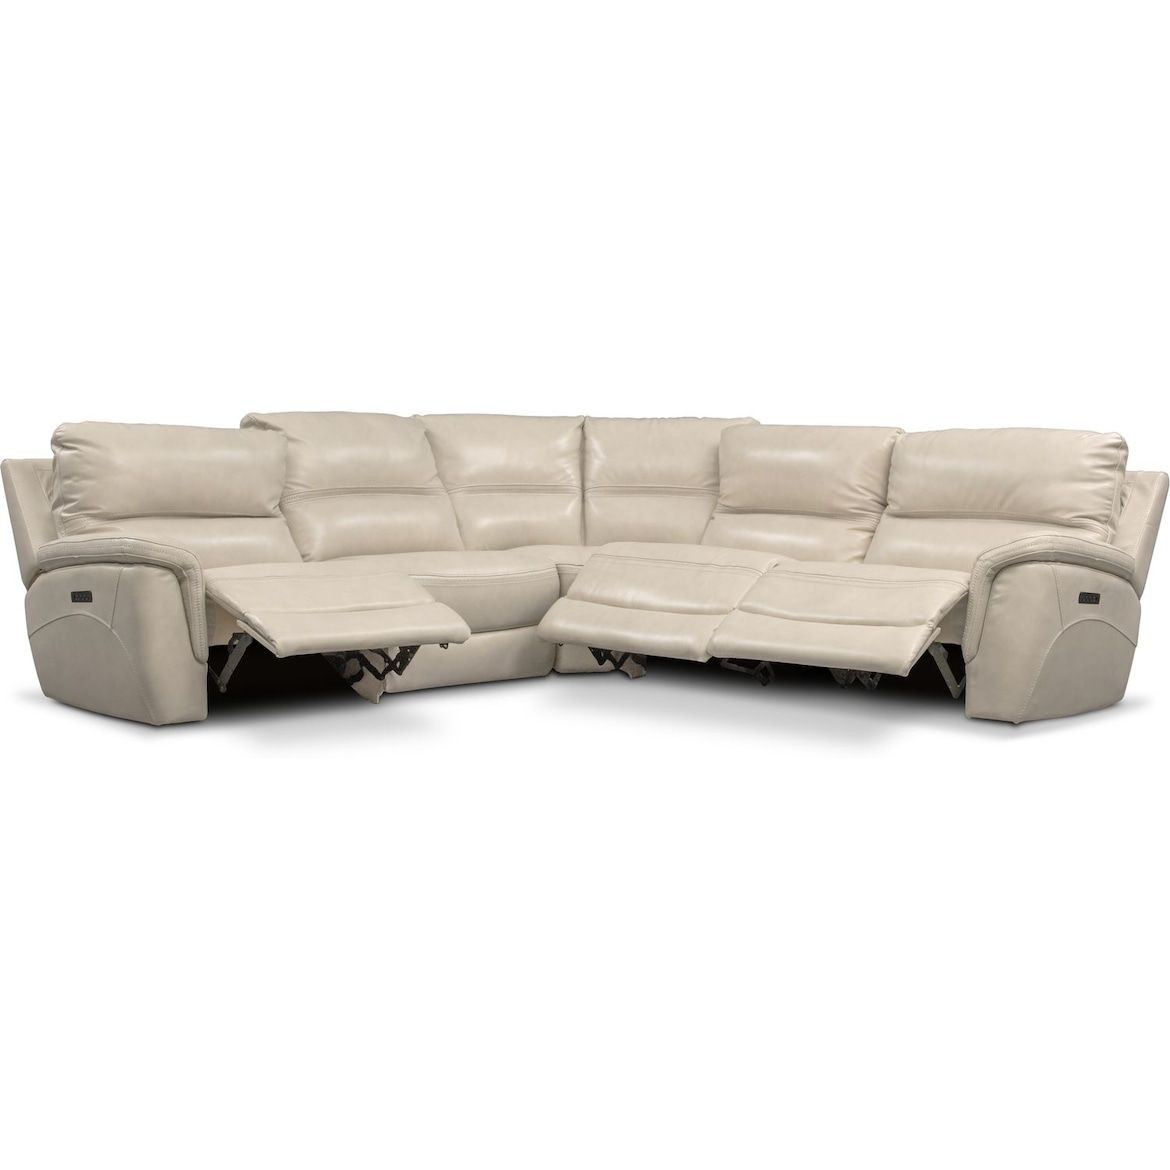 Avanti 5 Piece Triple Power Reclining Sectional With 3 Reclining Seats Value City Furniture And M Sectional Sofas Living Room Modern Sofa Sectional Furniture